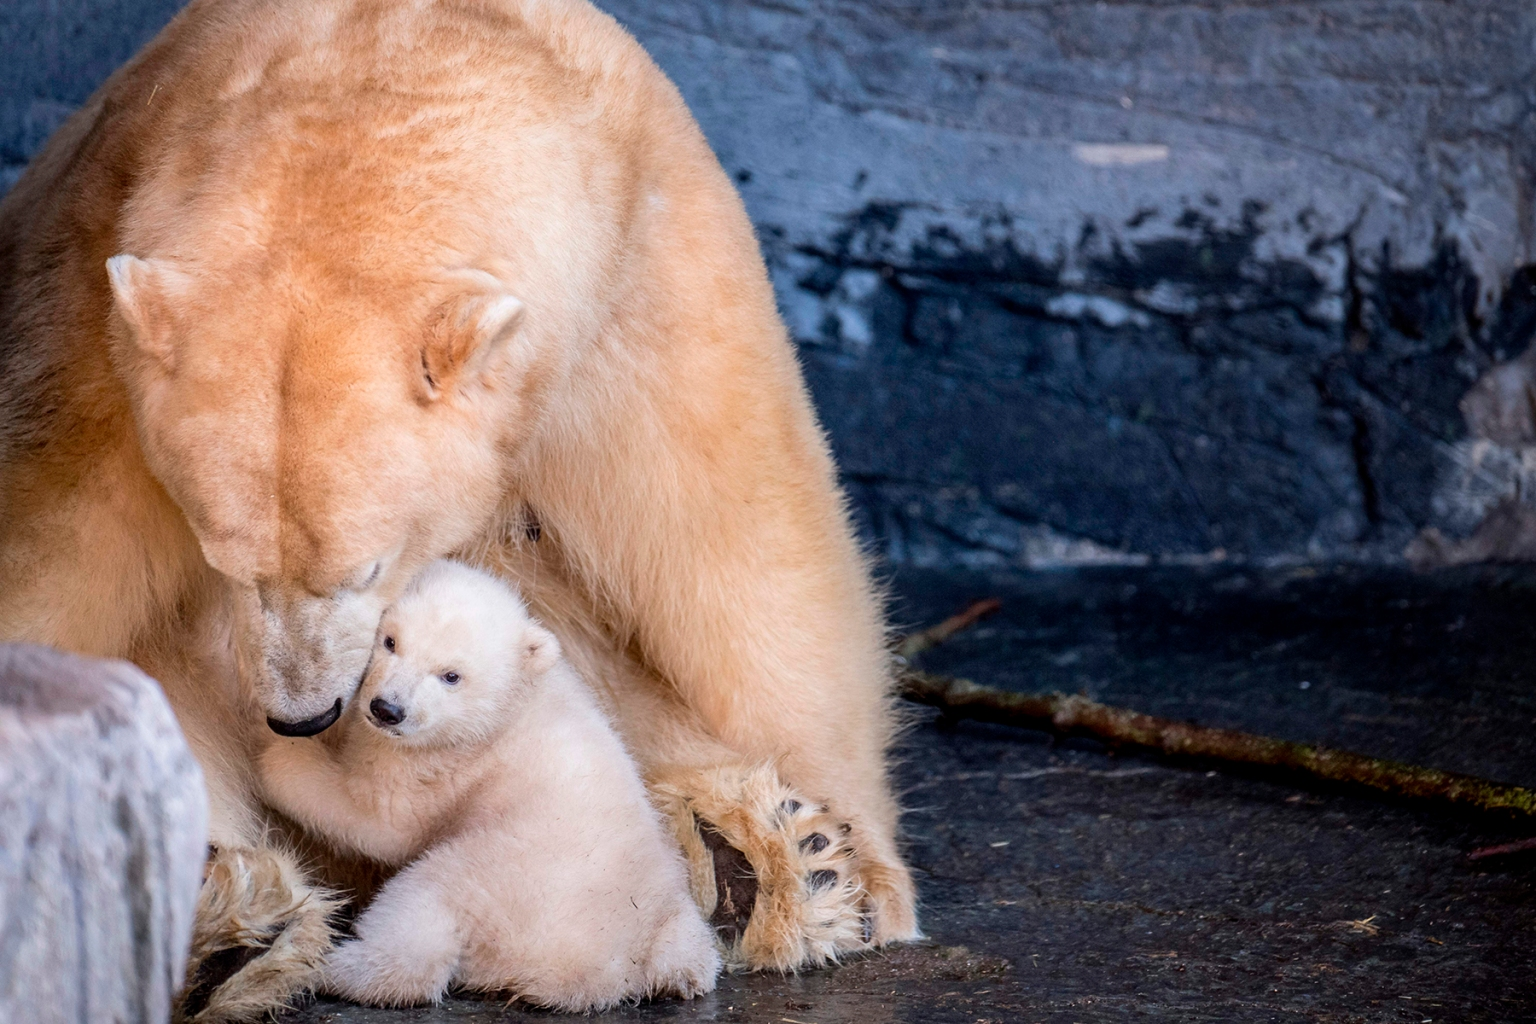 The polar bear cub at the Copenhagen Zoo comes outside for the first time on Feb. 28. MADS CLAUS RASMUSSEN/AFP/Getty Images